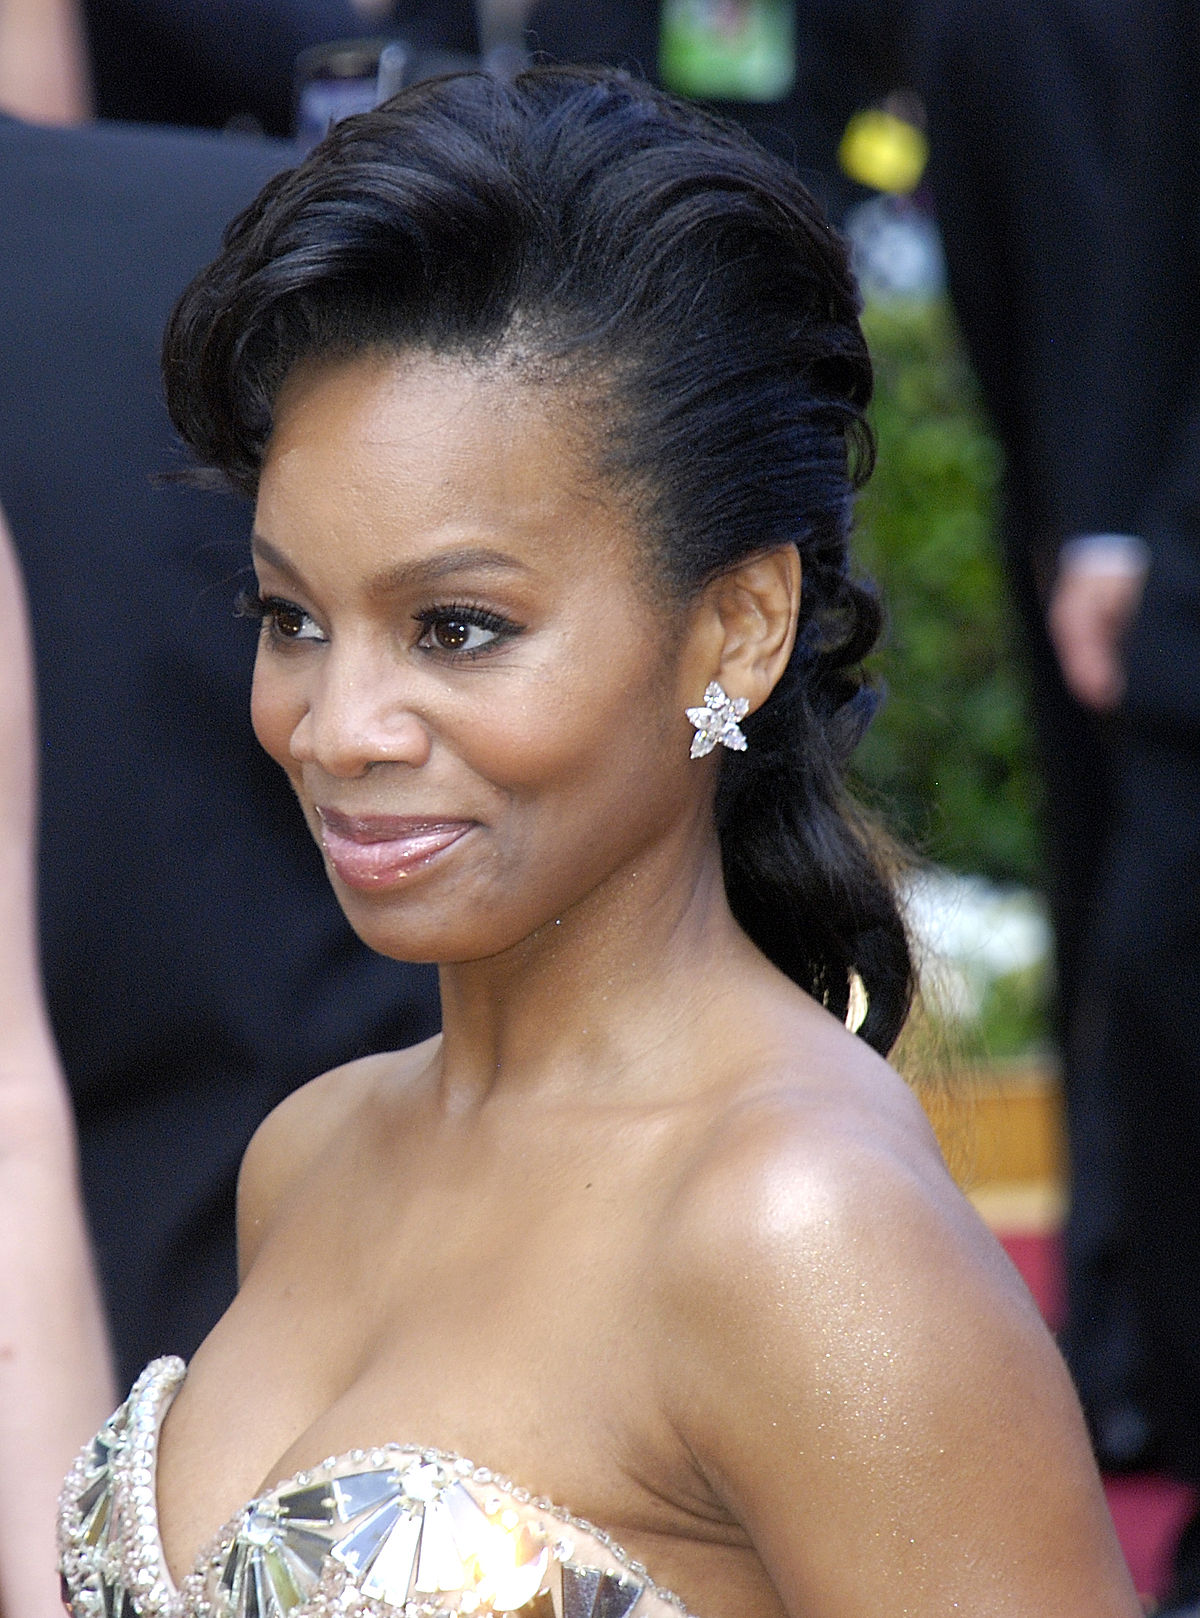 Anika noni rose not